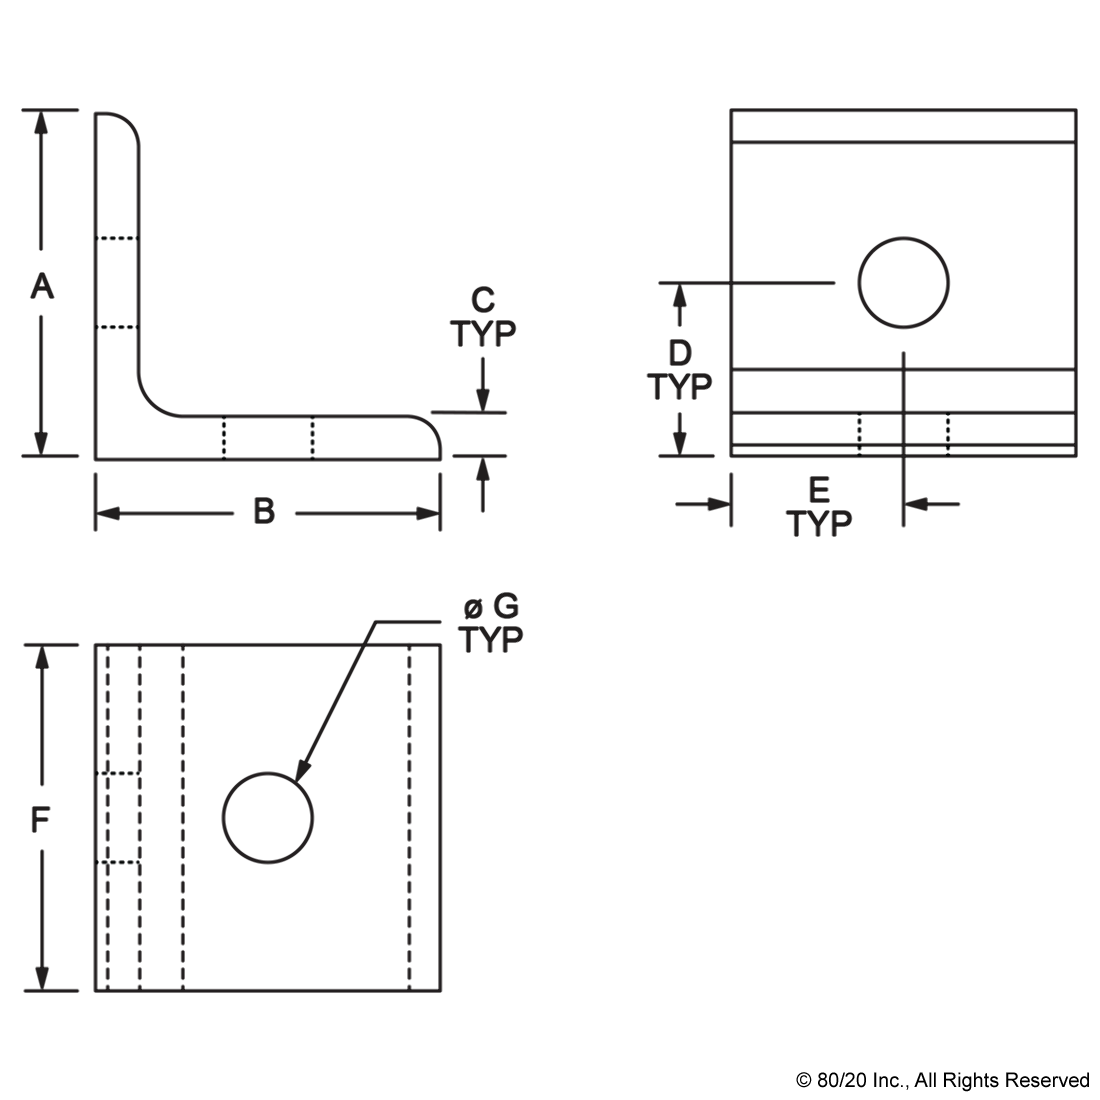 Typ drawing manufacturing. Dimensional